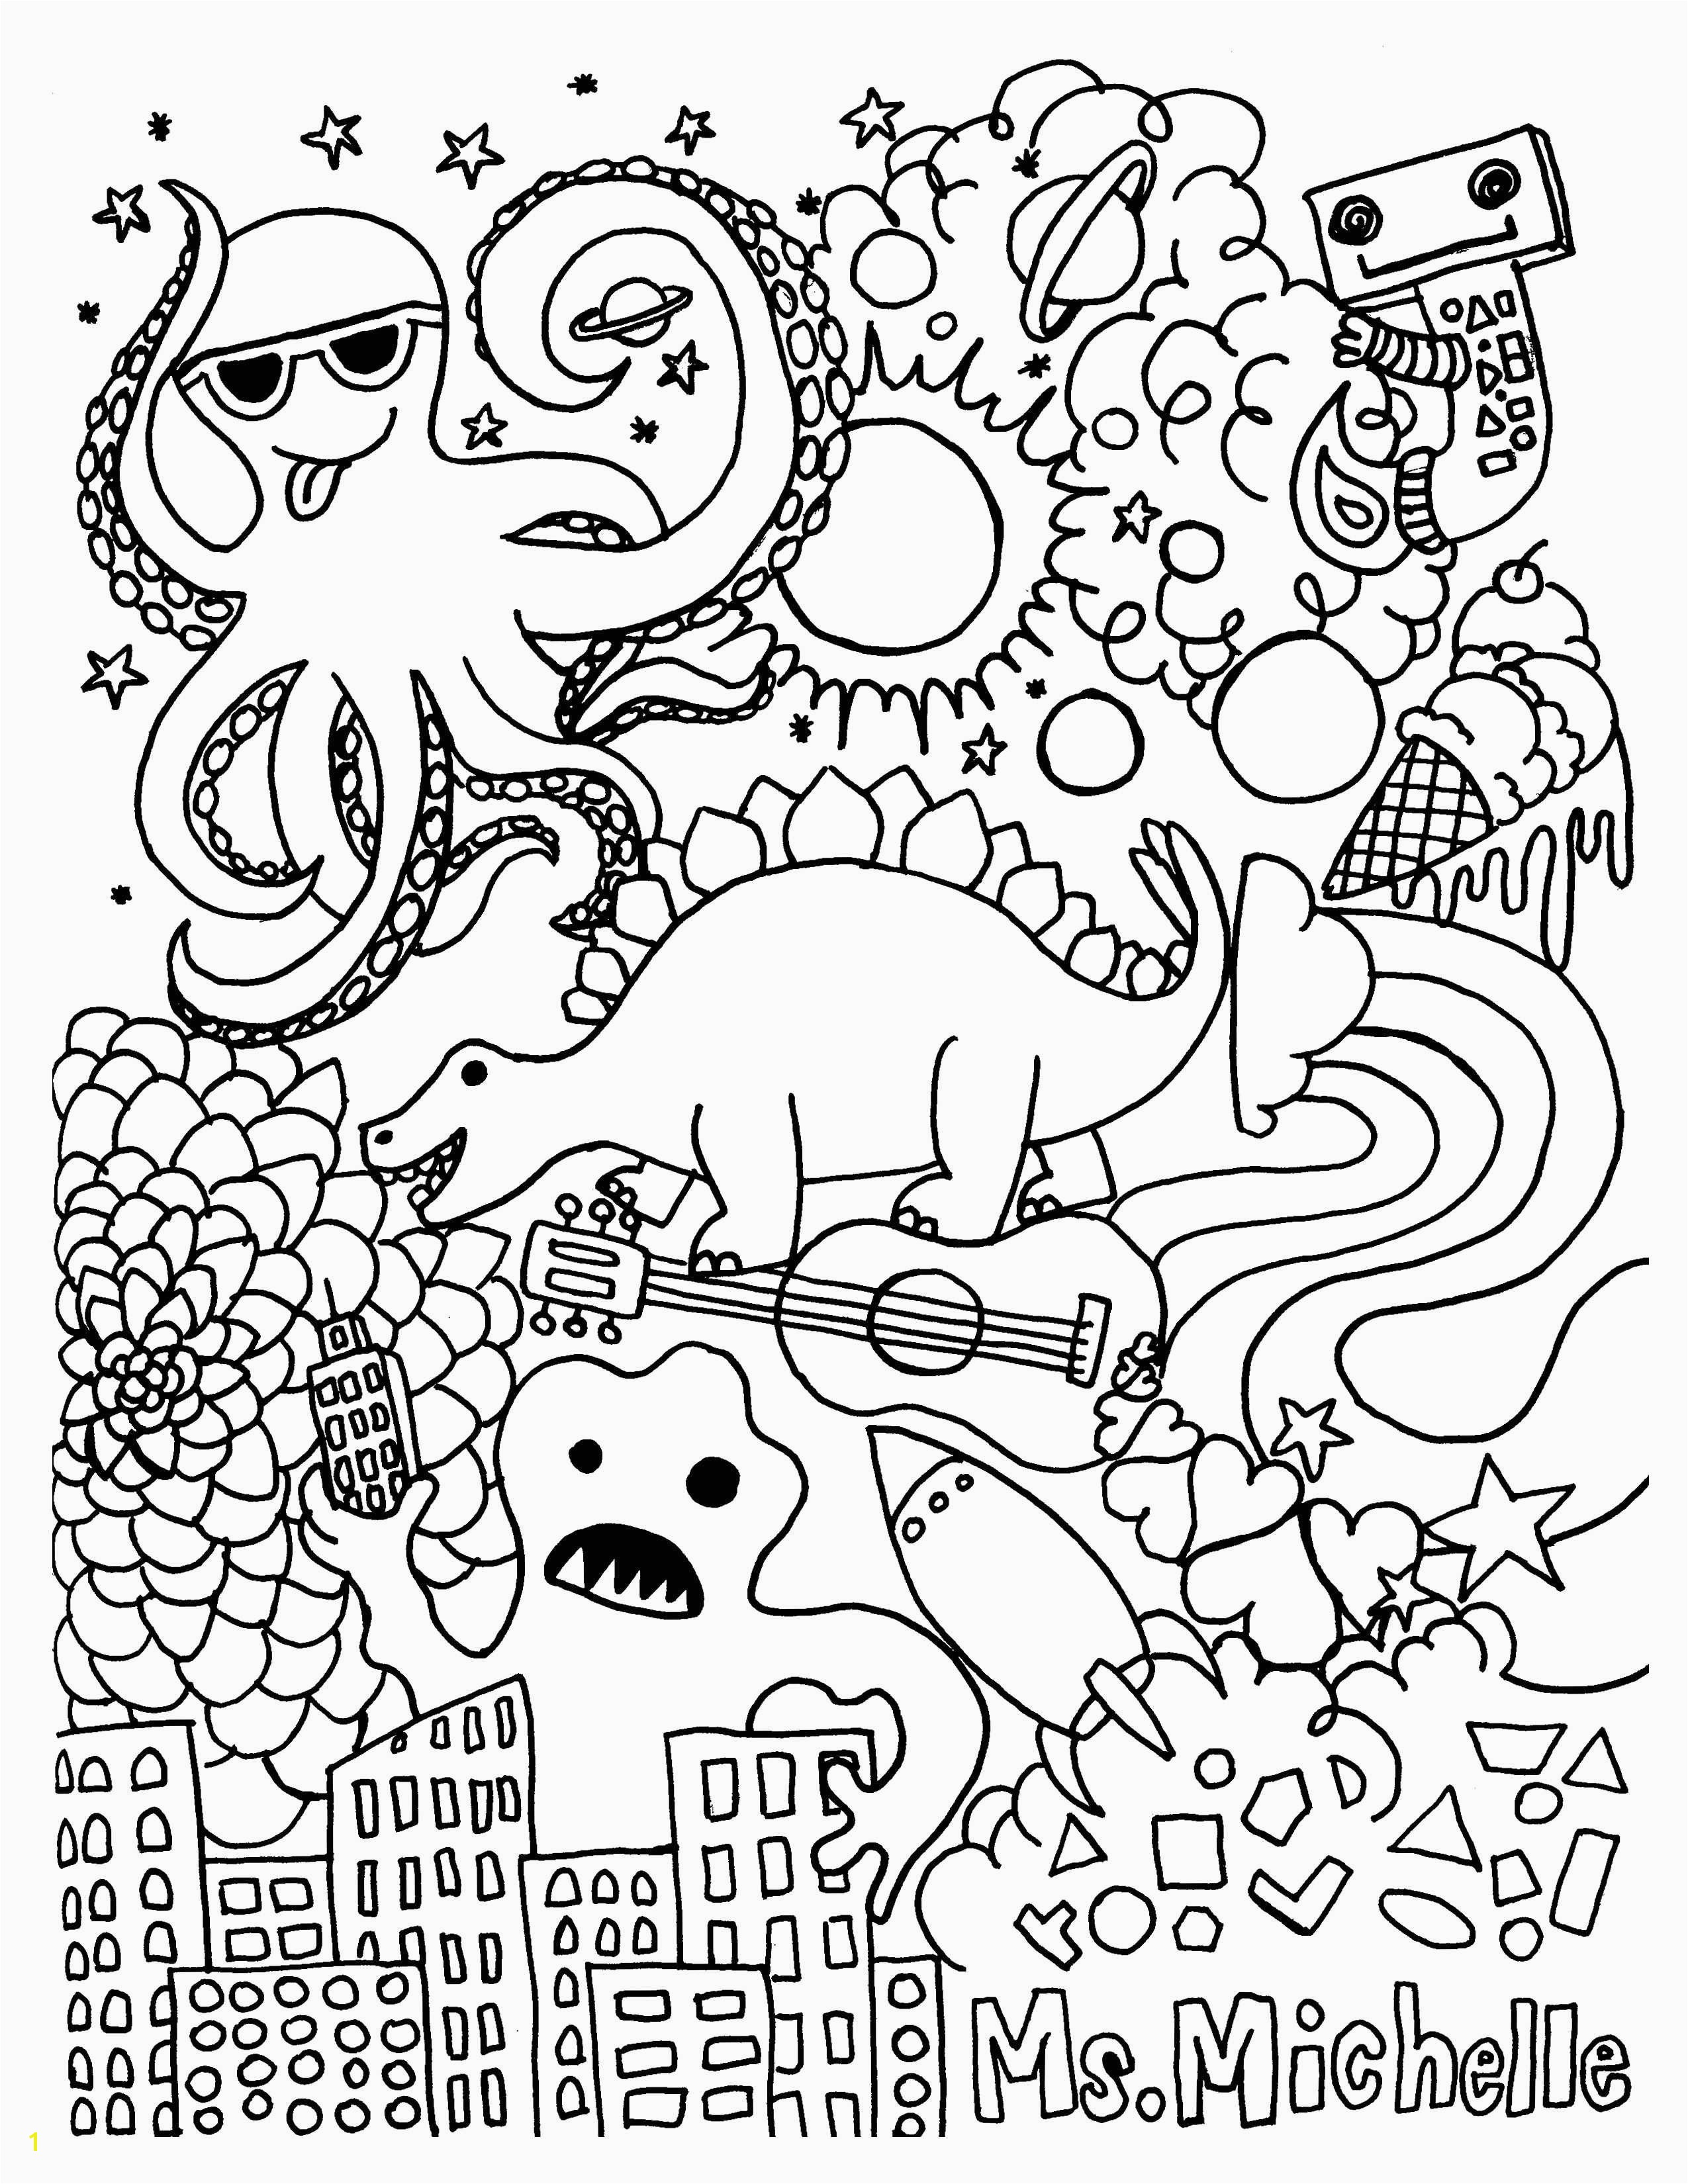 Abc Coloring Pages Bible 2018 Free Coloring Pages For Halloween Unique Best Coloring Page Adult Od